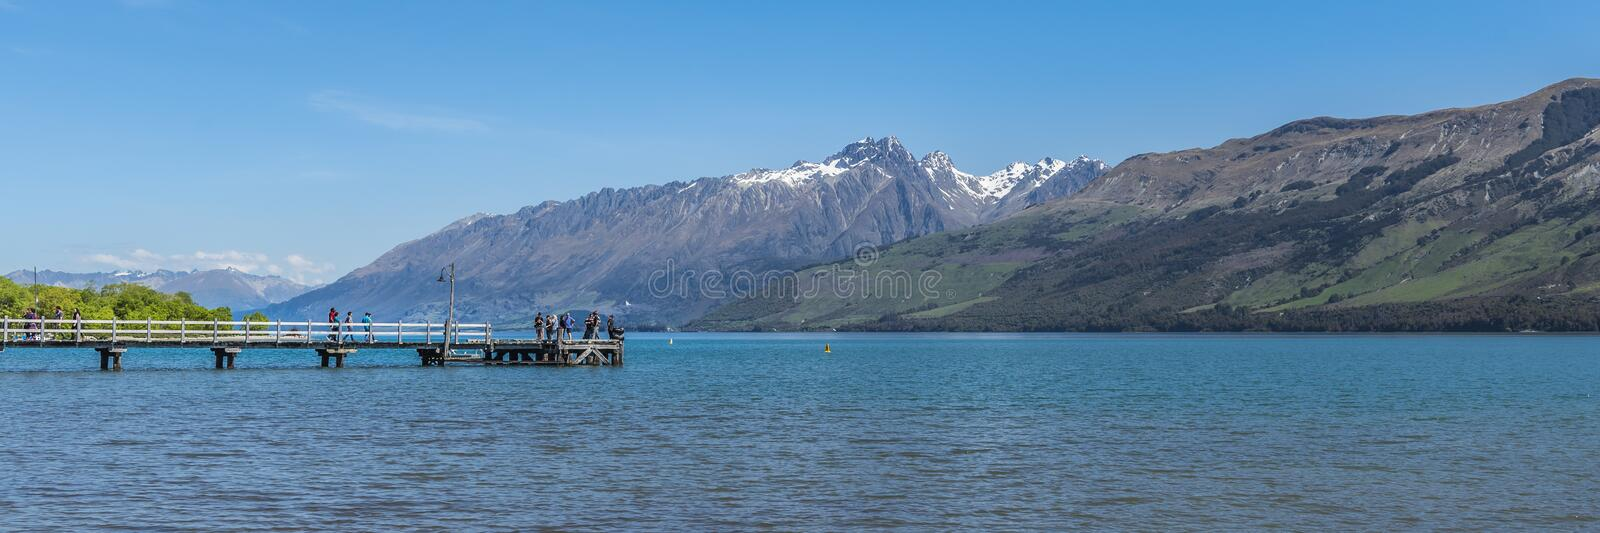 View of the landscape of the lake Wakatipu, Queenstown, New Zealand. Copy space for text.  stock photography